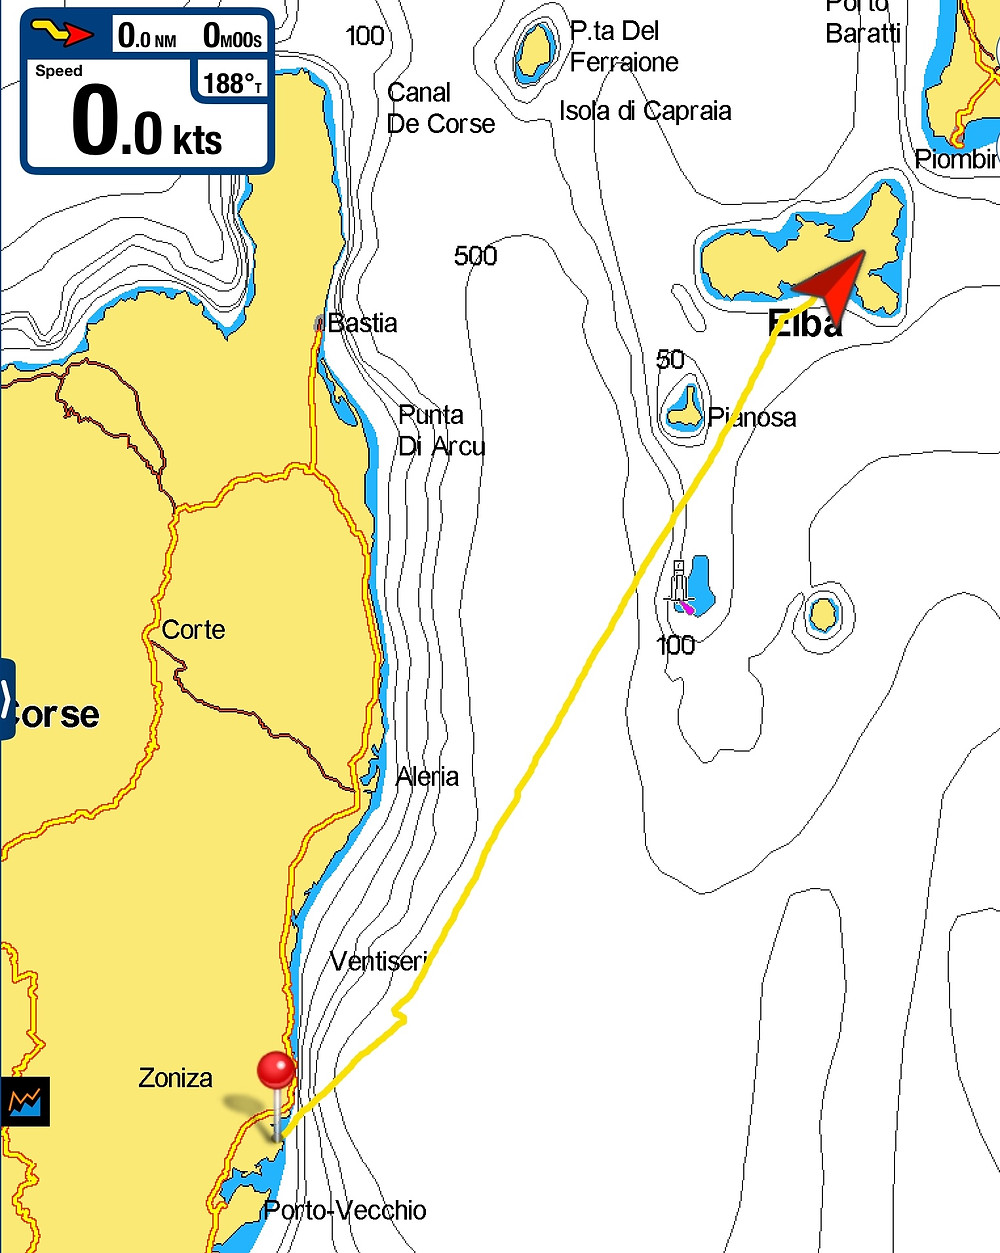 Track of trip from Corsica to Elba